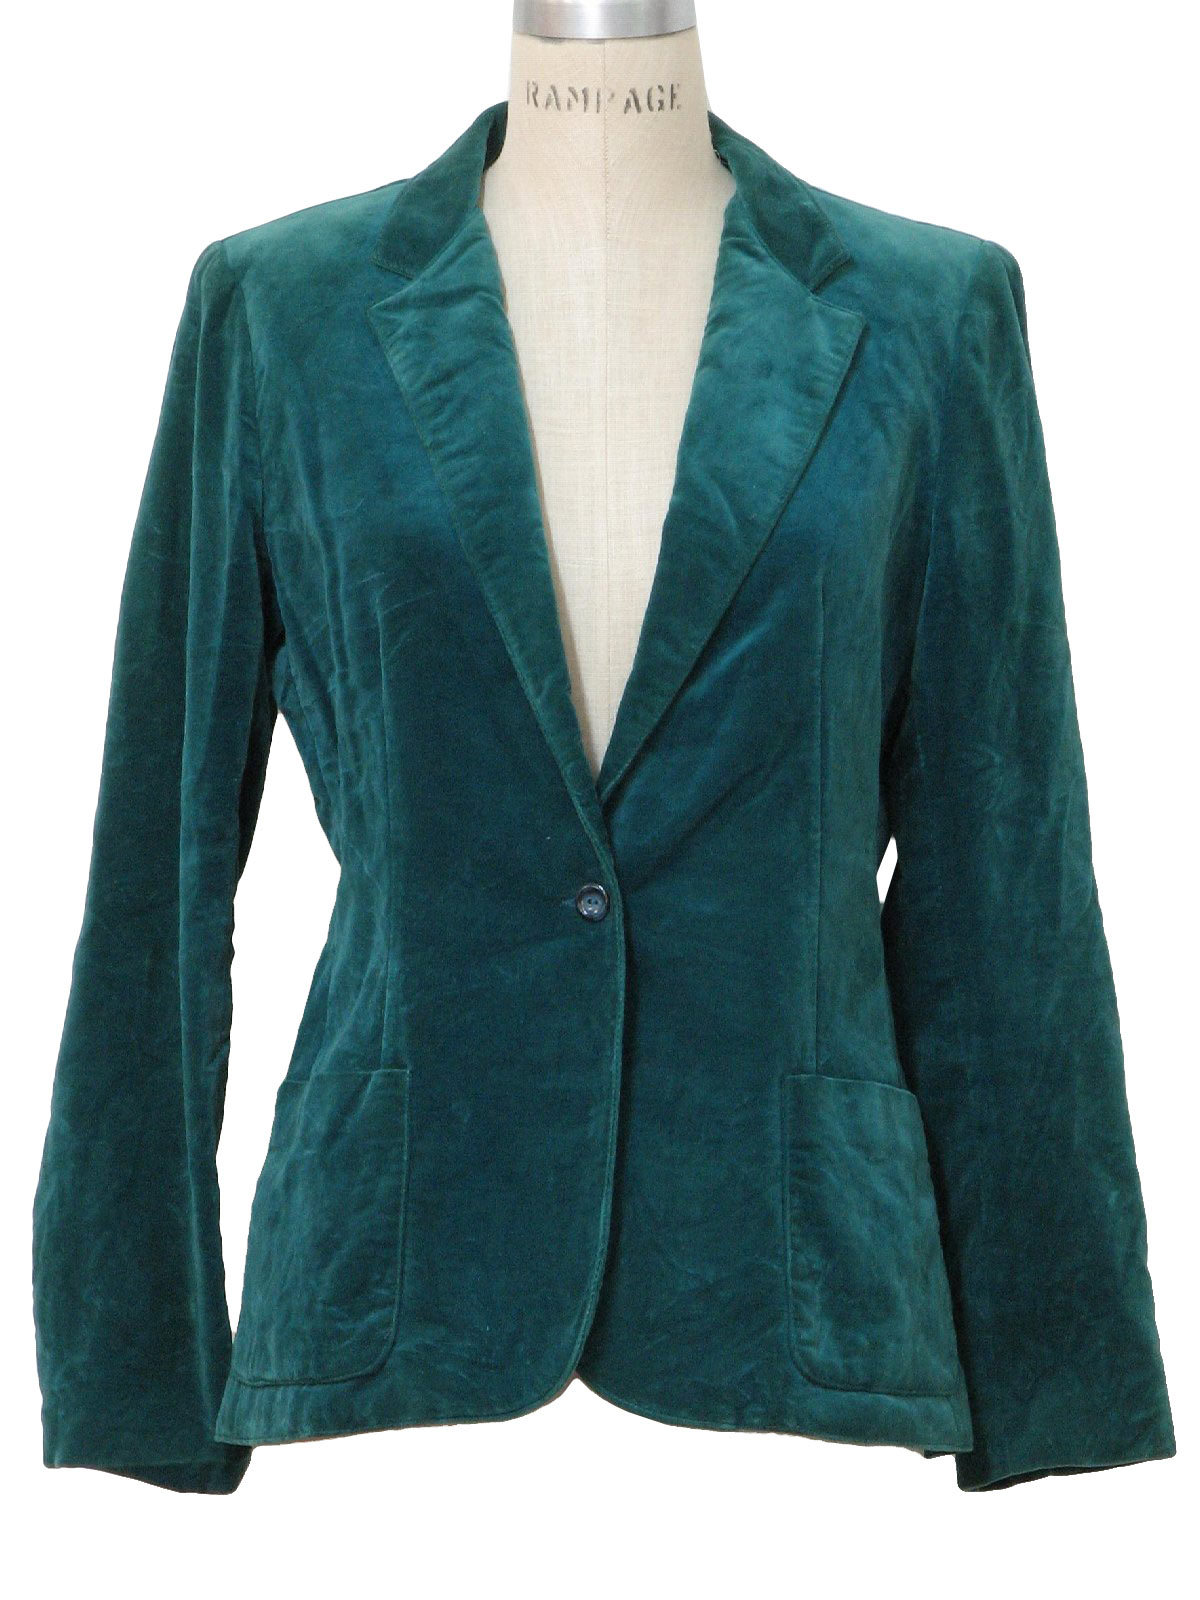 1980 S Retro Jacket 80s Dana Point Womens Teal Blue